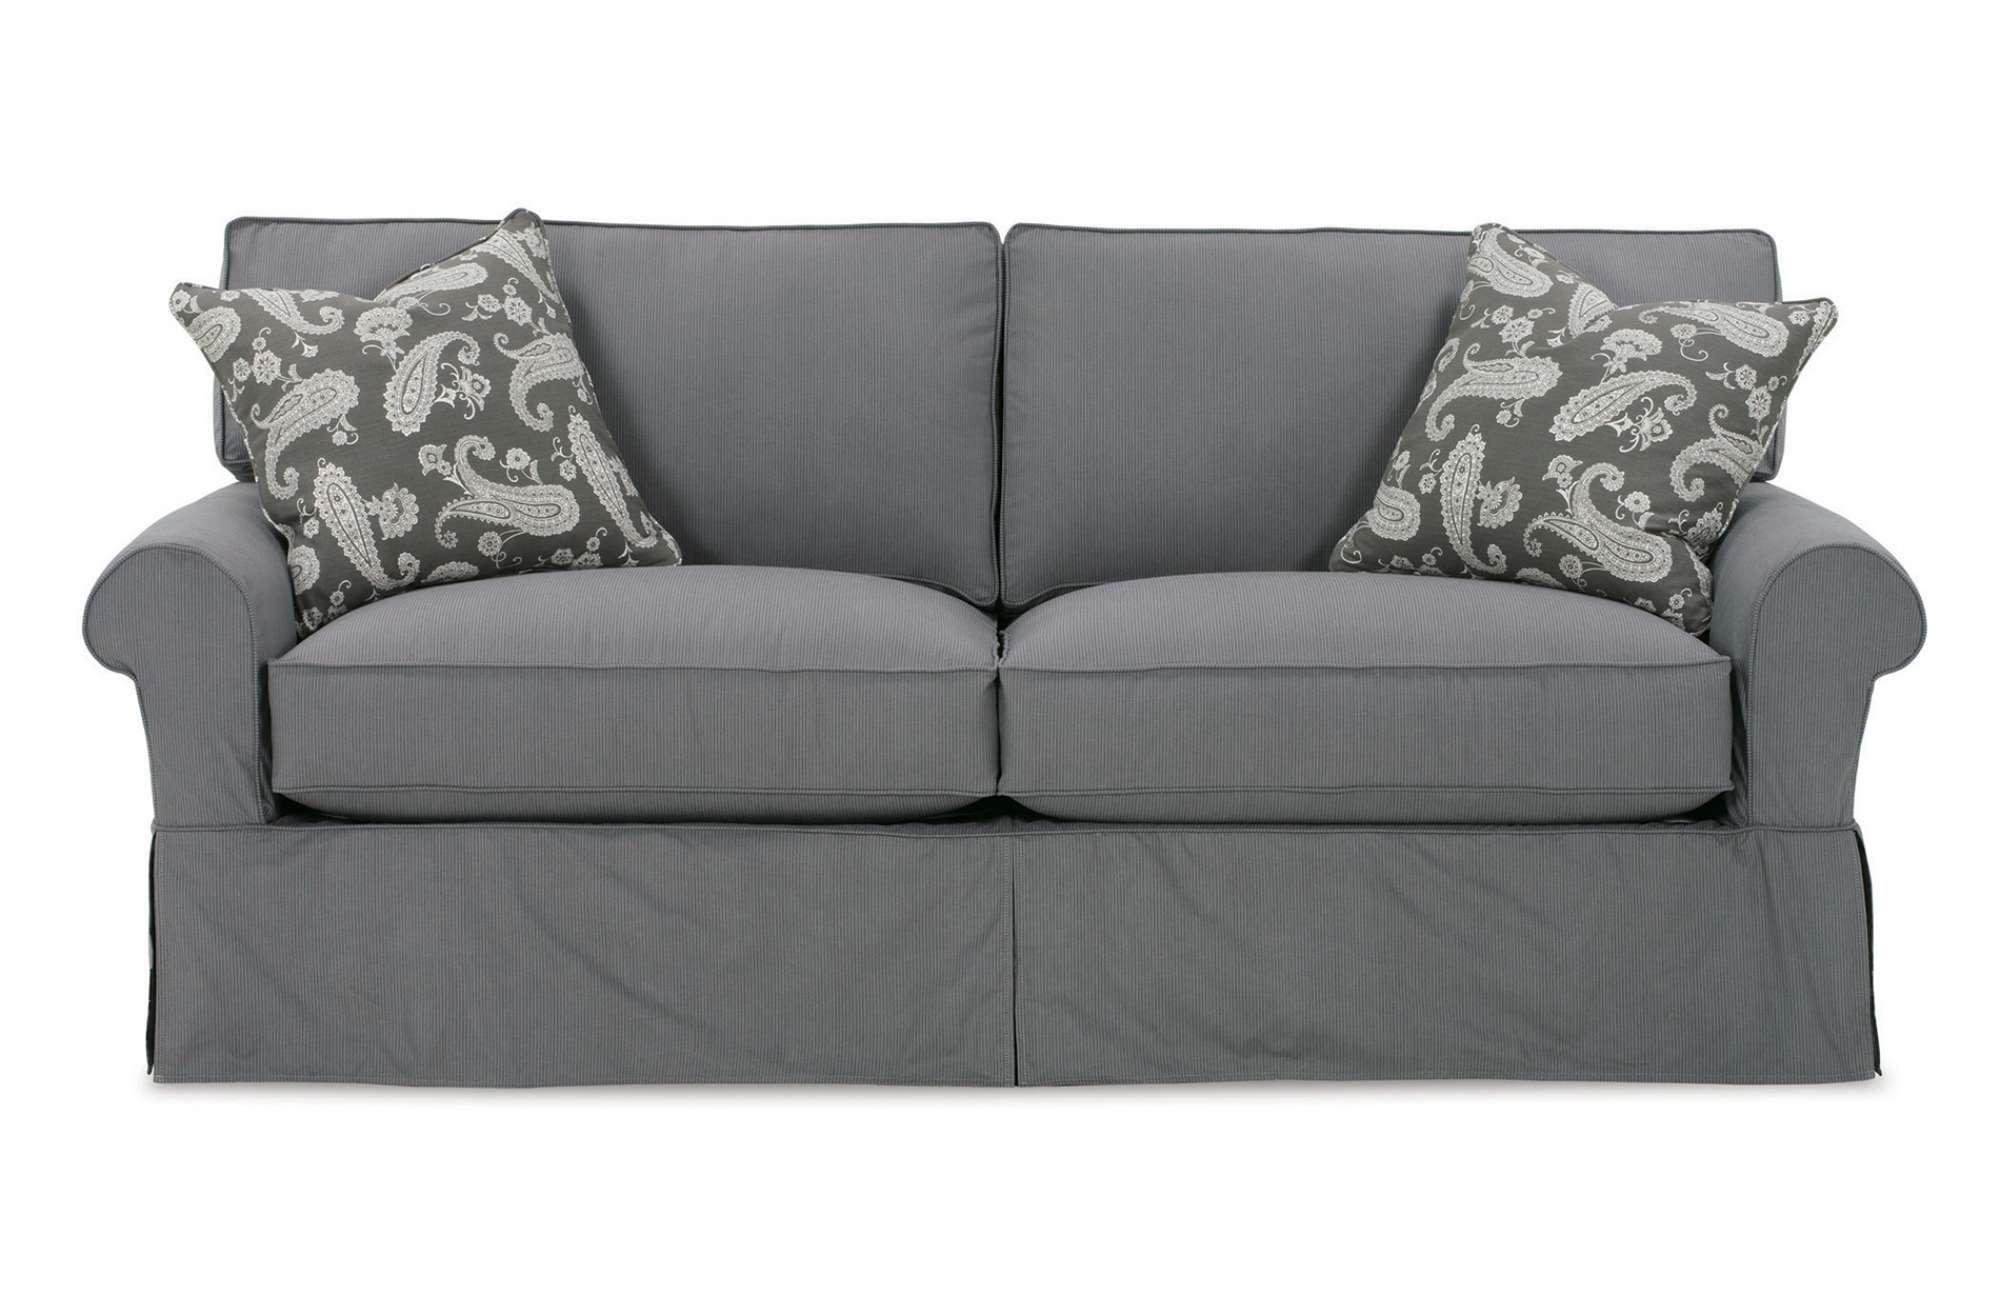 Beautiful Sleeper Sofa Slipcover 28 In Sofas And Couches Set With With Sleeper Sofa Slipcovers (Image 1 of 20)